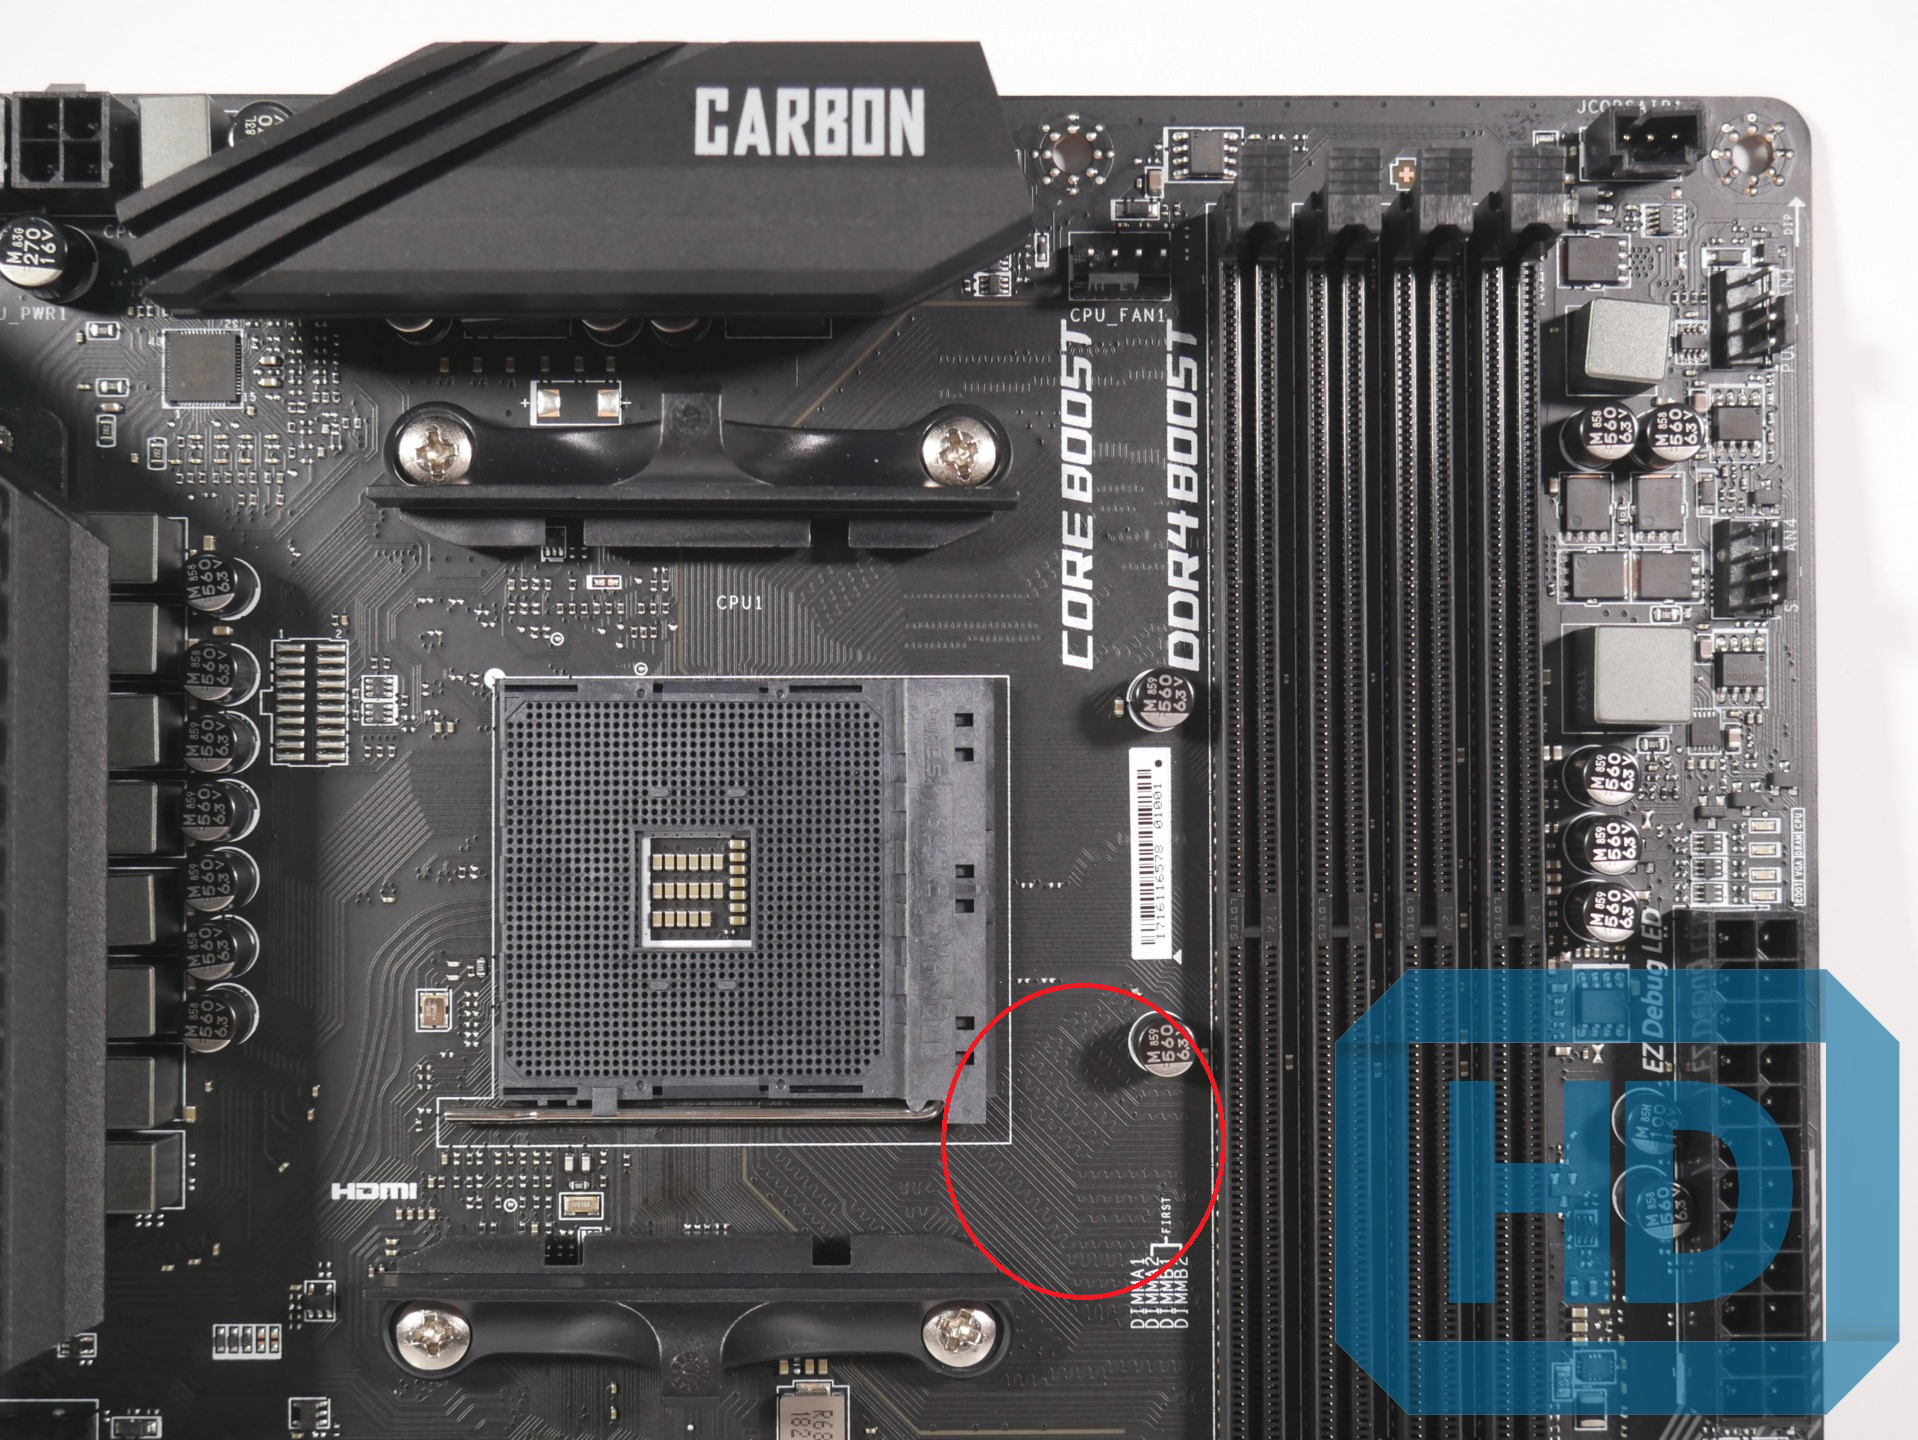 Click image for larger version  Name:b450 pro carbon memory layout.png Views:59 Size:4.46 MB ID:274486